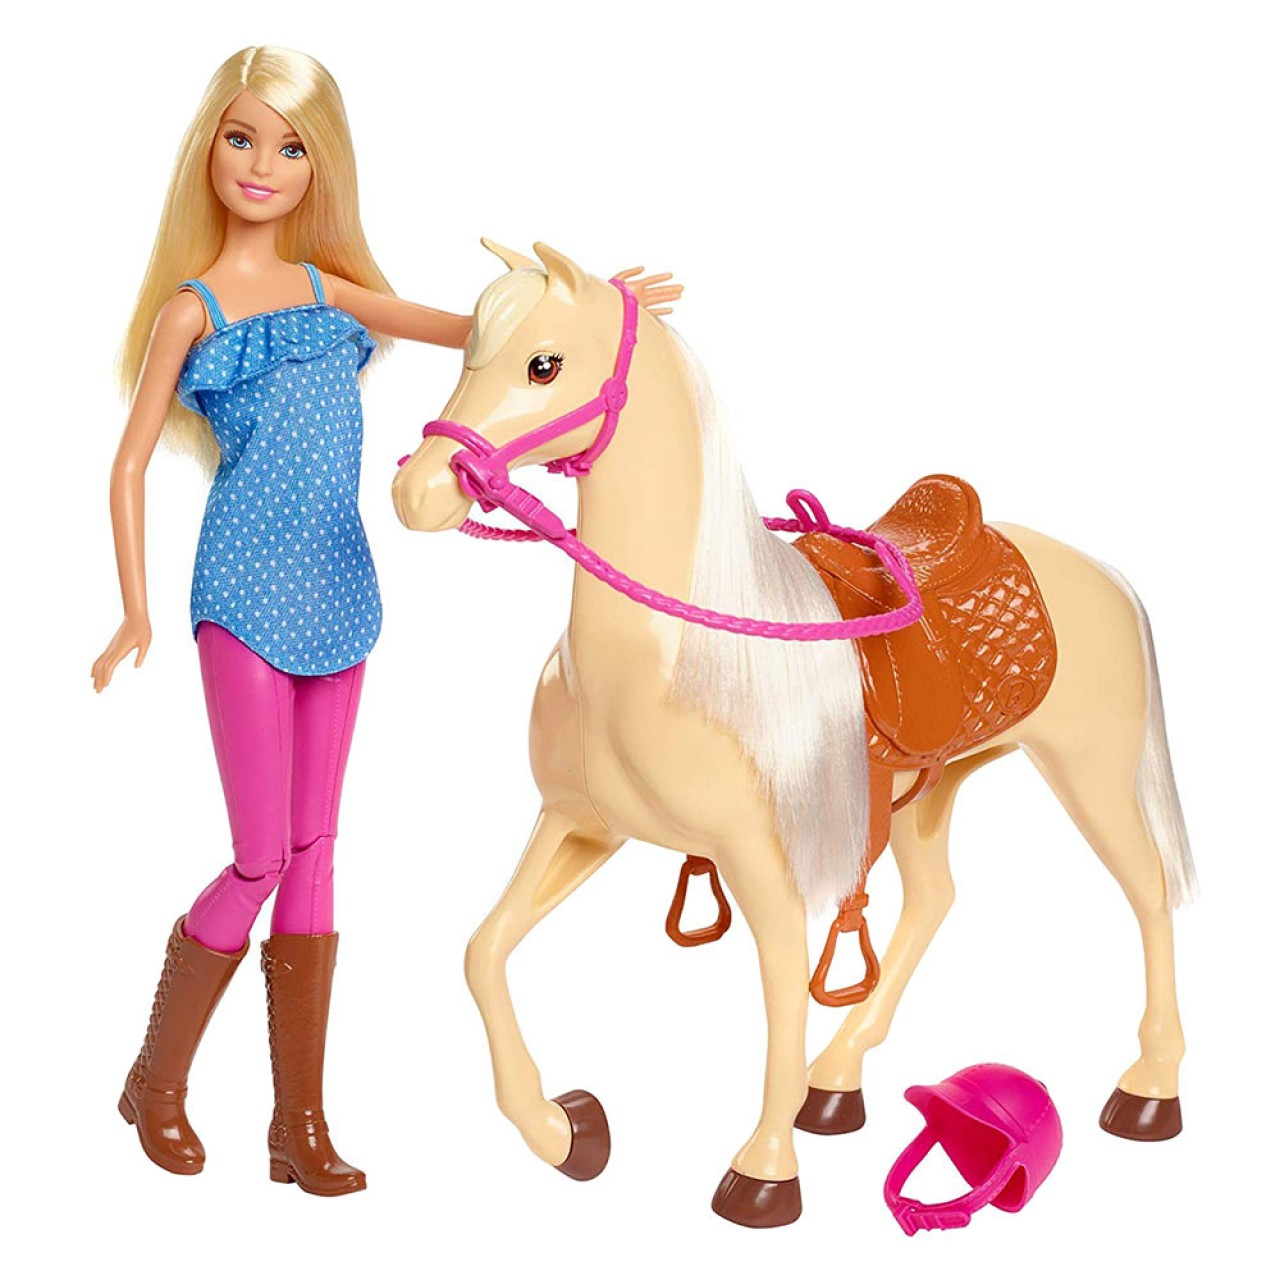 Игровой набор Barbie Верховая езда (FXH13) Barbie Doll & Horse